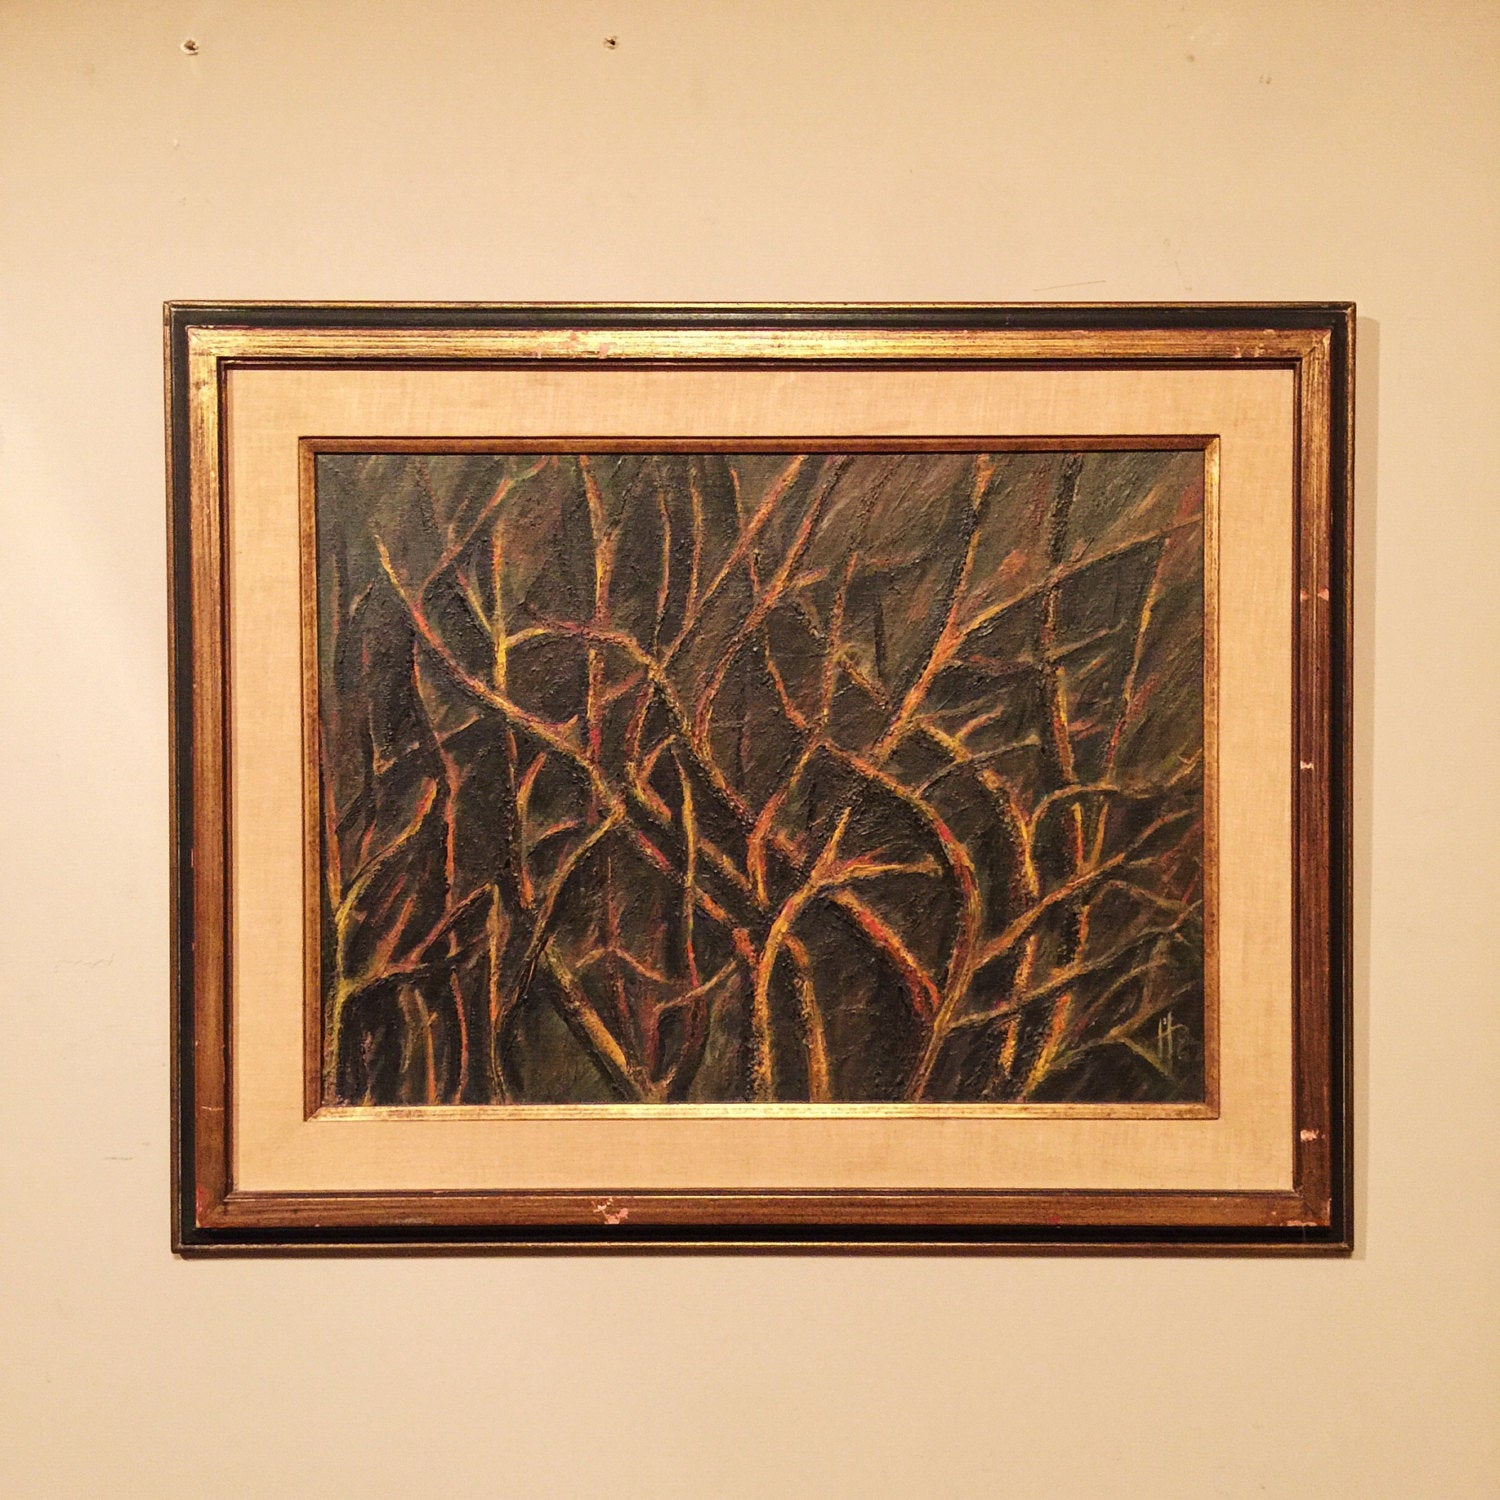 Vintage Abstract Oil Painting - 1962 - Signed Monogram - Mystery Artist - New York - Haunting - Framed